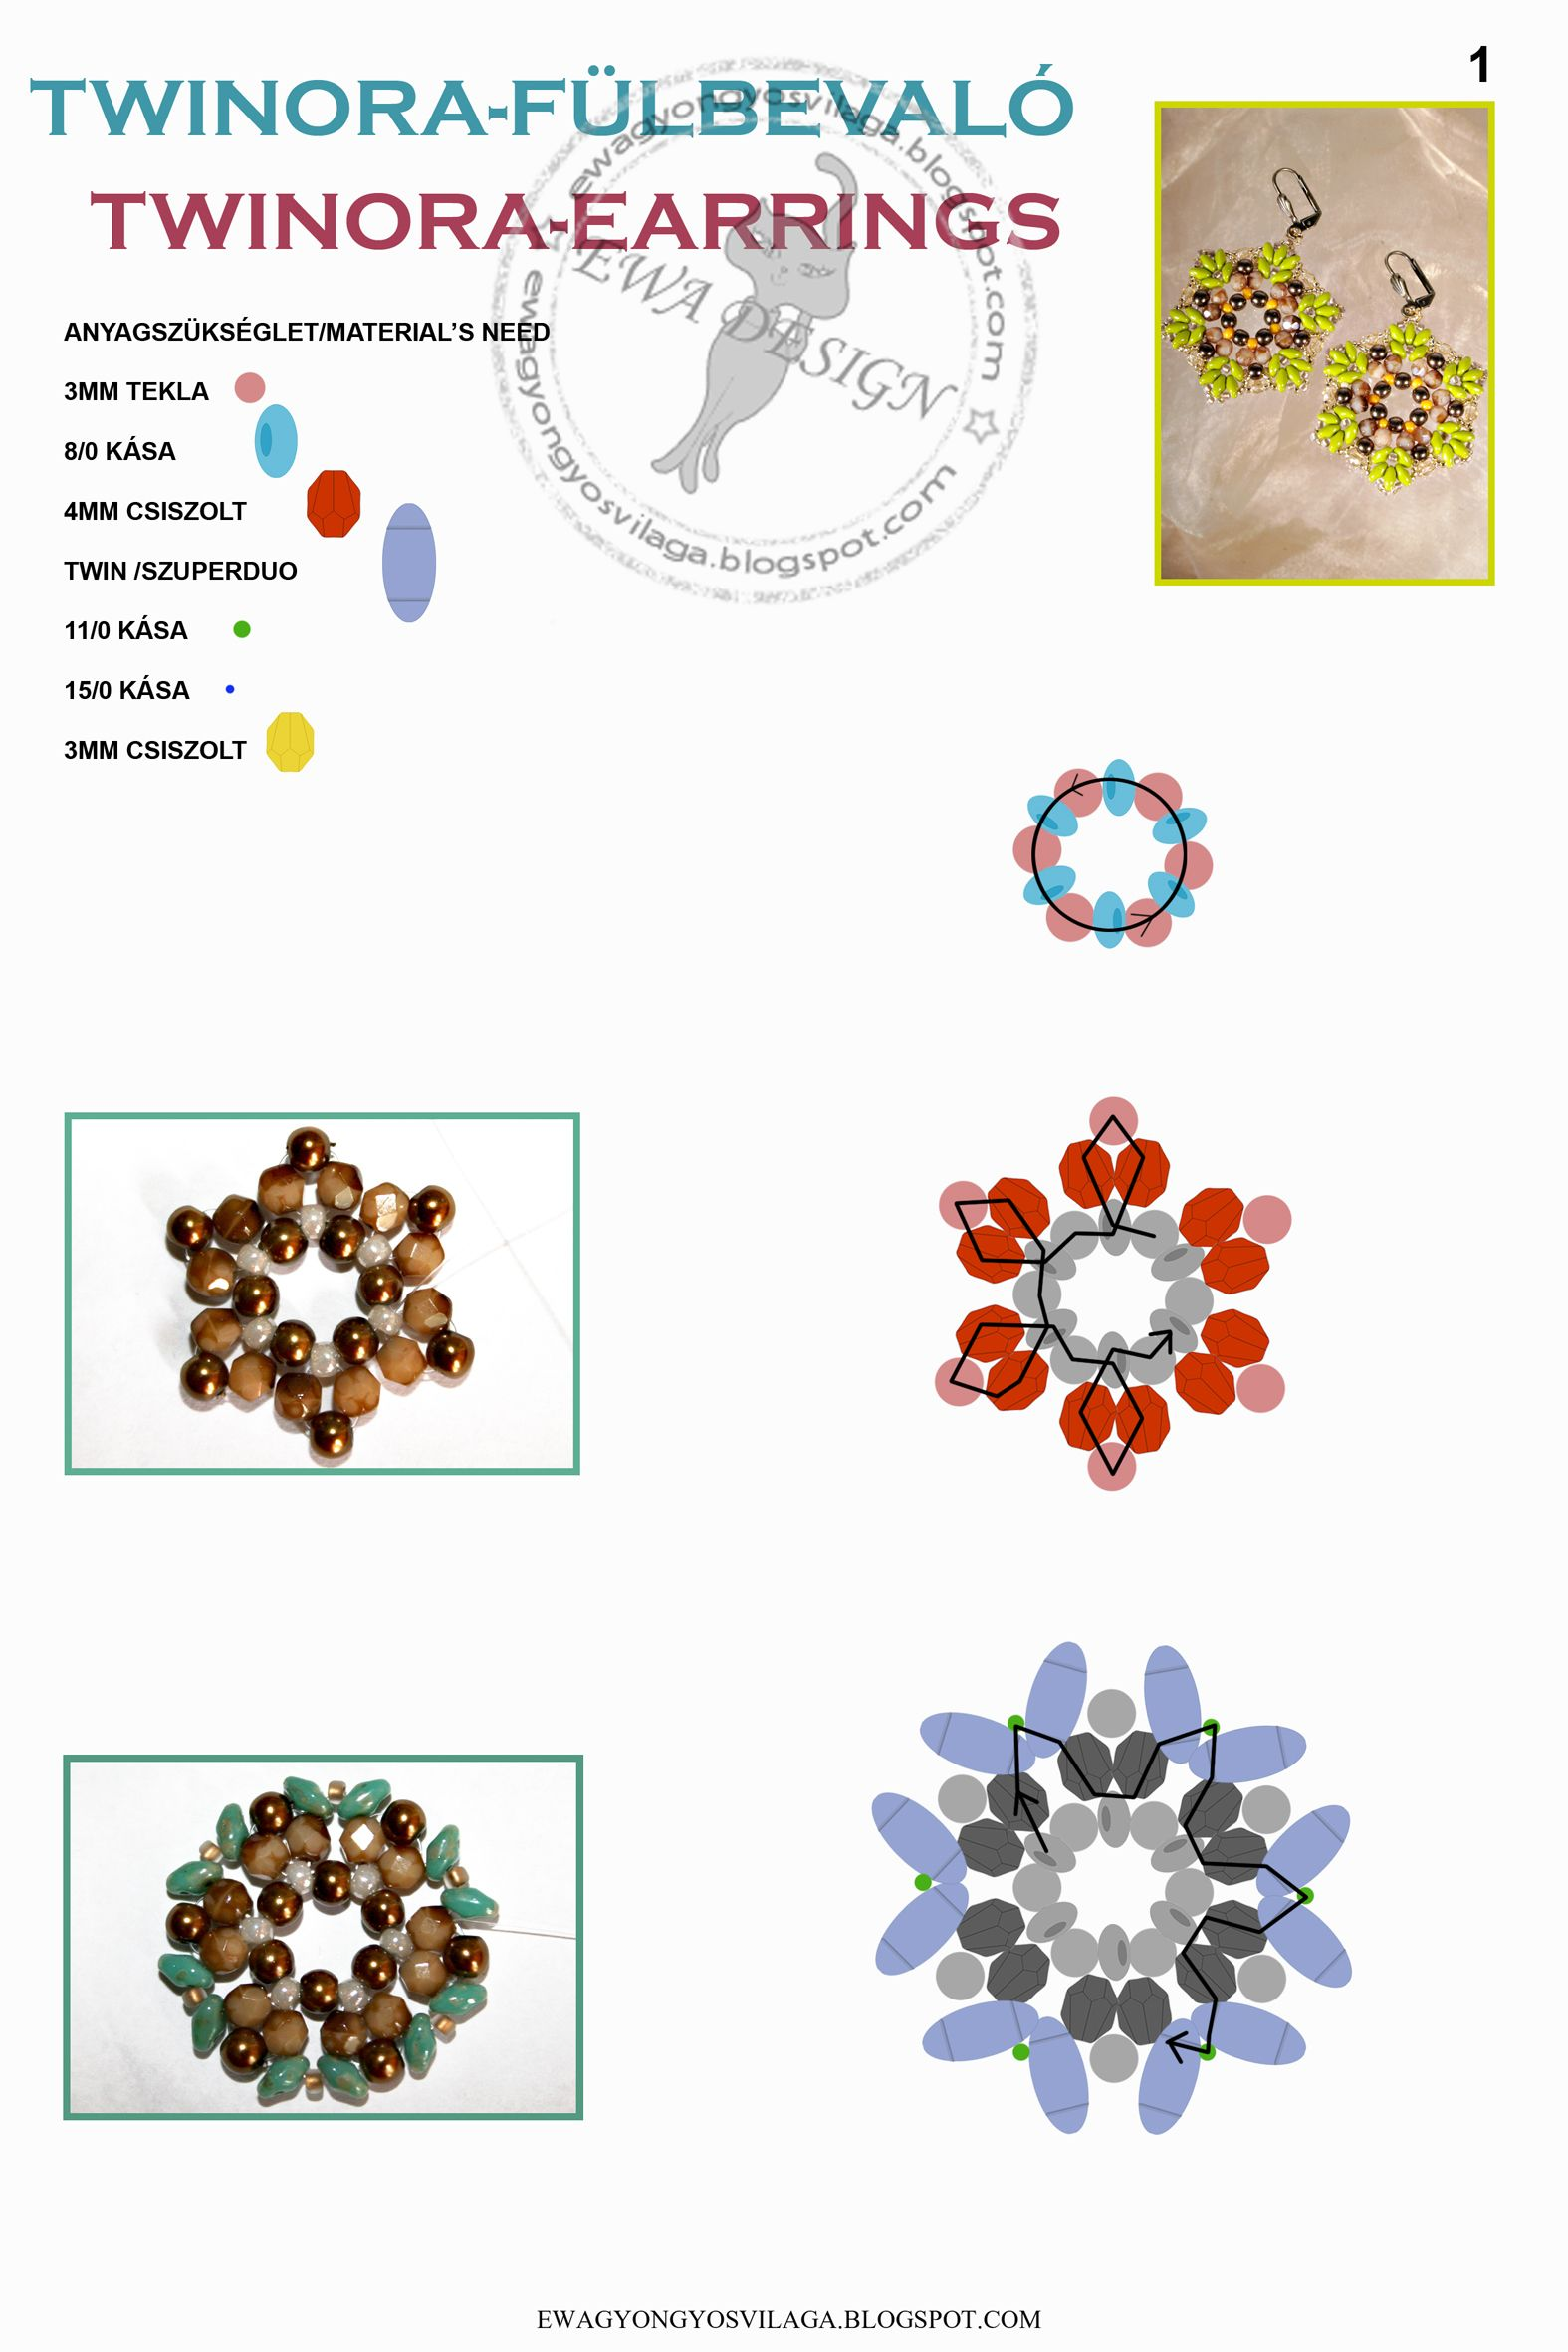 TWINORA Earrings FREE Pattern by Ewa. Use: round beads 3mm (rose), seed beads 8/0 (turquoise), faceted beads 4mm (red), Twin or SuperDuo beads (blue), seed beads 11/0 (green) and 15/0 (dark blue), faceted beads 3mm (yellow). Page 1 of 3